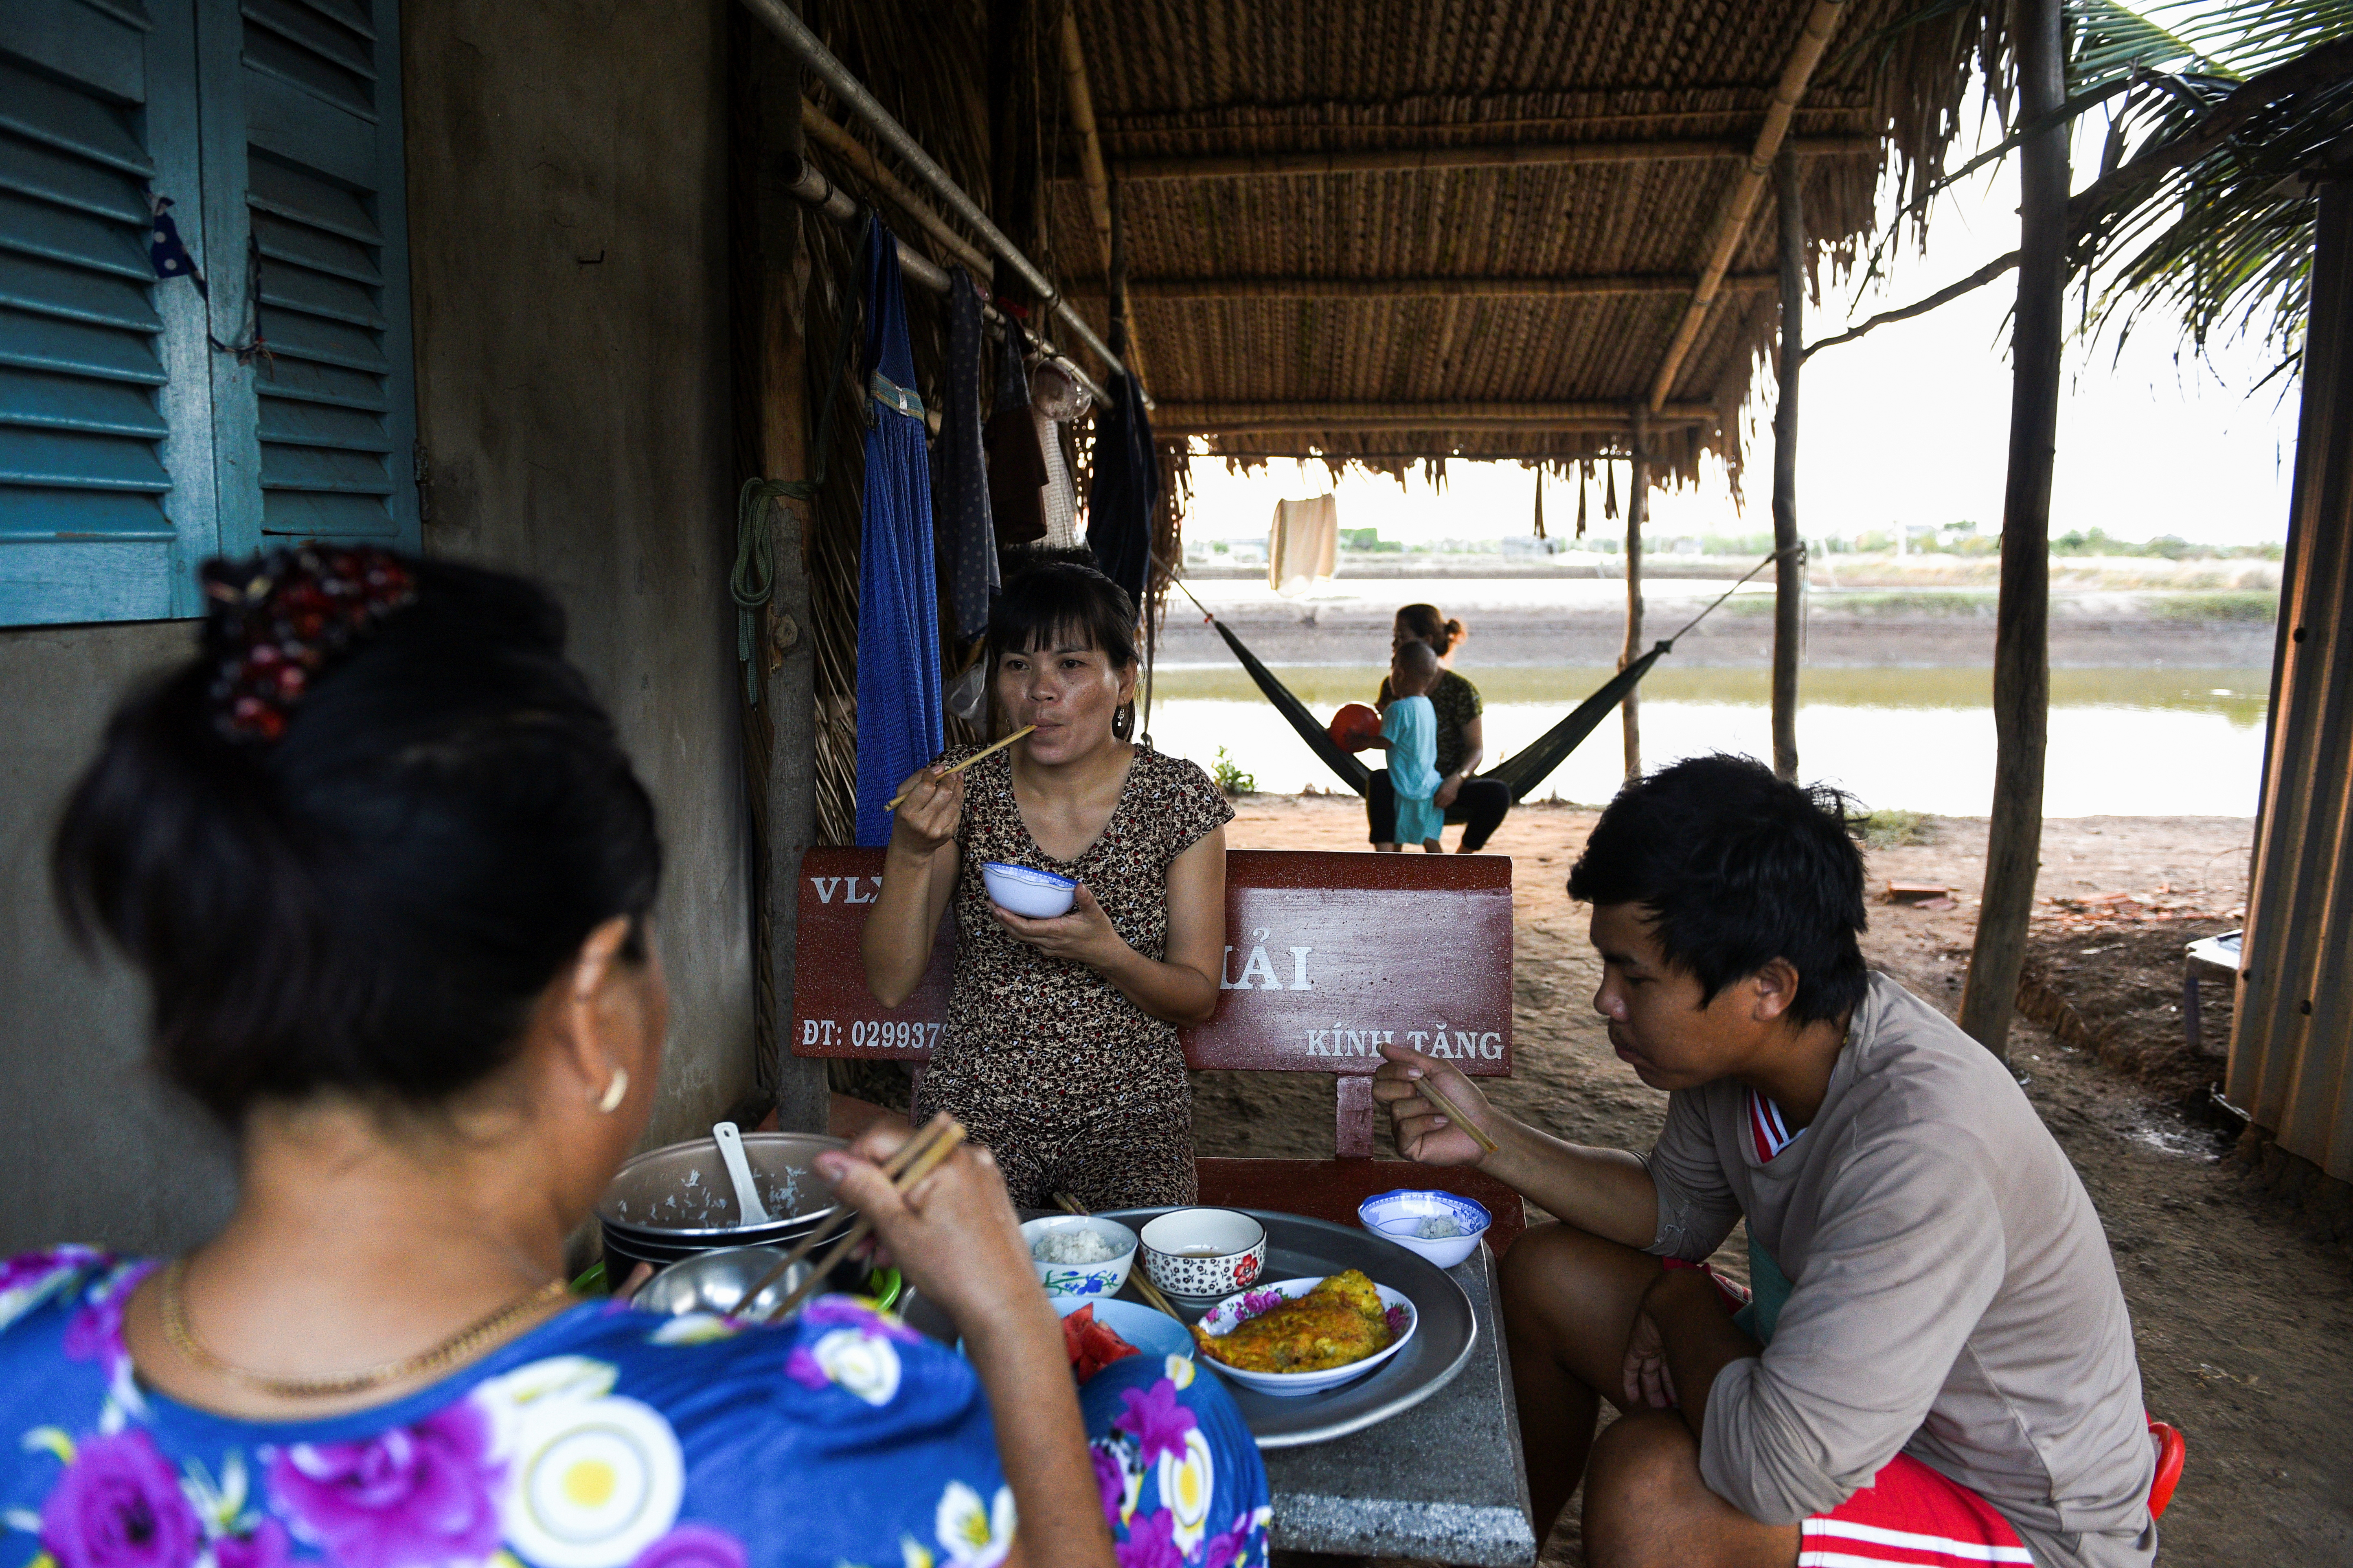 Relatives of a shrimp farmer Ta Thi Thanh Thuy eat dinner at her house in Soc Trang province, Vietnam, May 1, 2021. Picture taken May 1, 2021. REUTERS/Thanh Hue